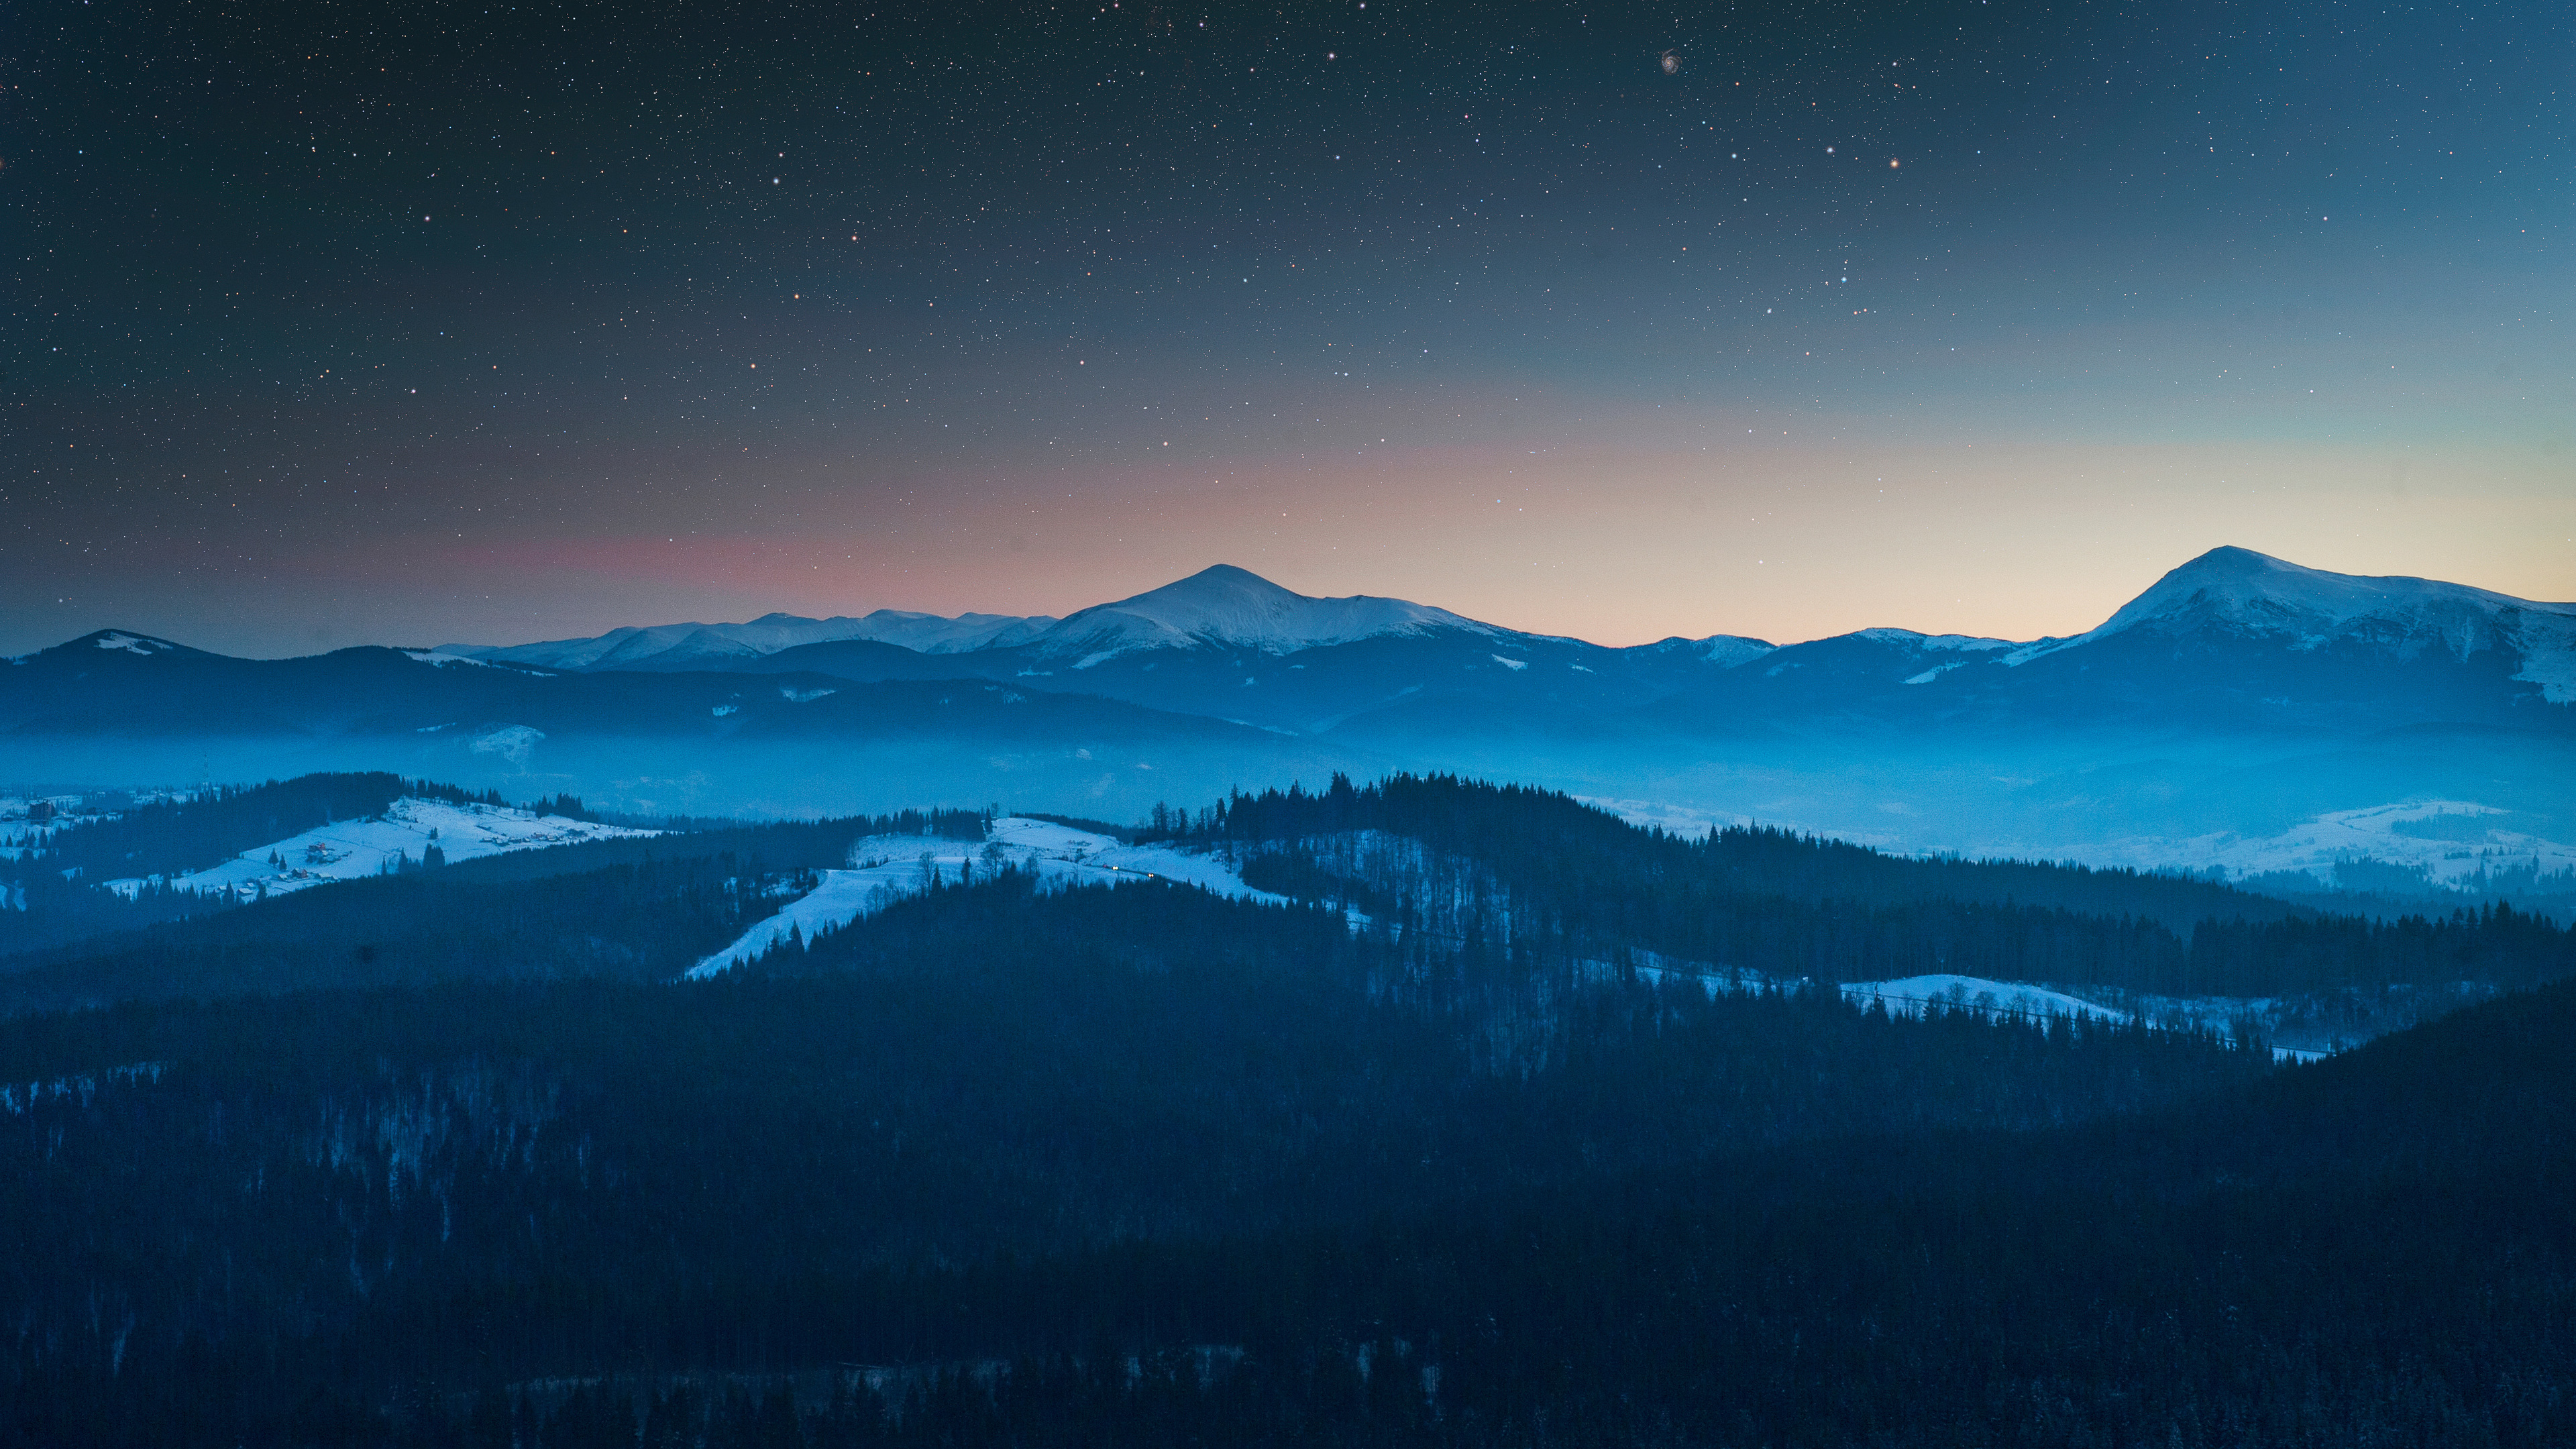 stars in the sky foggy season forest mountains 4k 1540136443 - Stars In The Sky Foggy Season Forest Mountains 4k - stars wallpapers, sky wallpapers, mountains wallpapers, hd-wallpapers, forest wallpapers, fog wallpapers, 4k-wallpapers